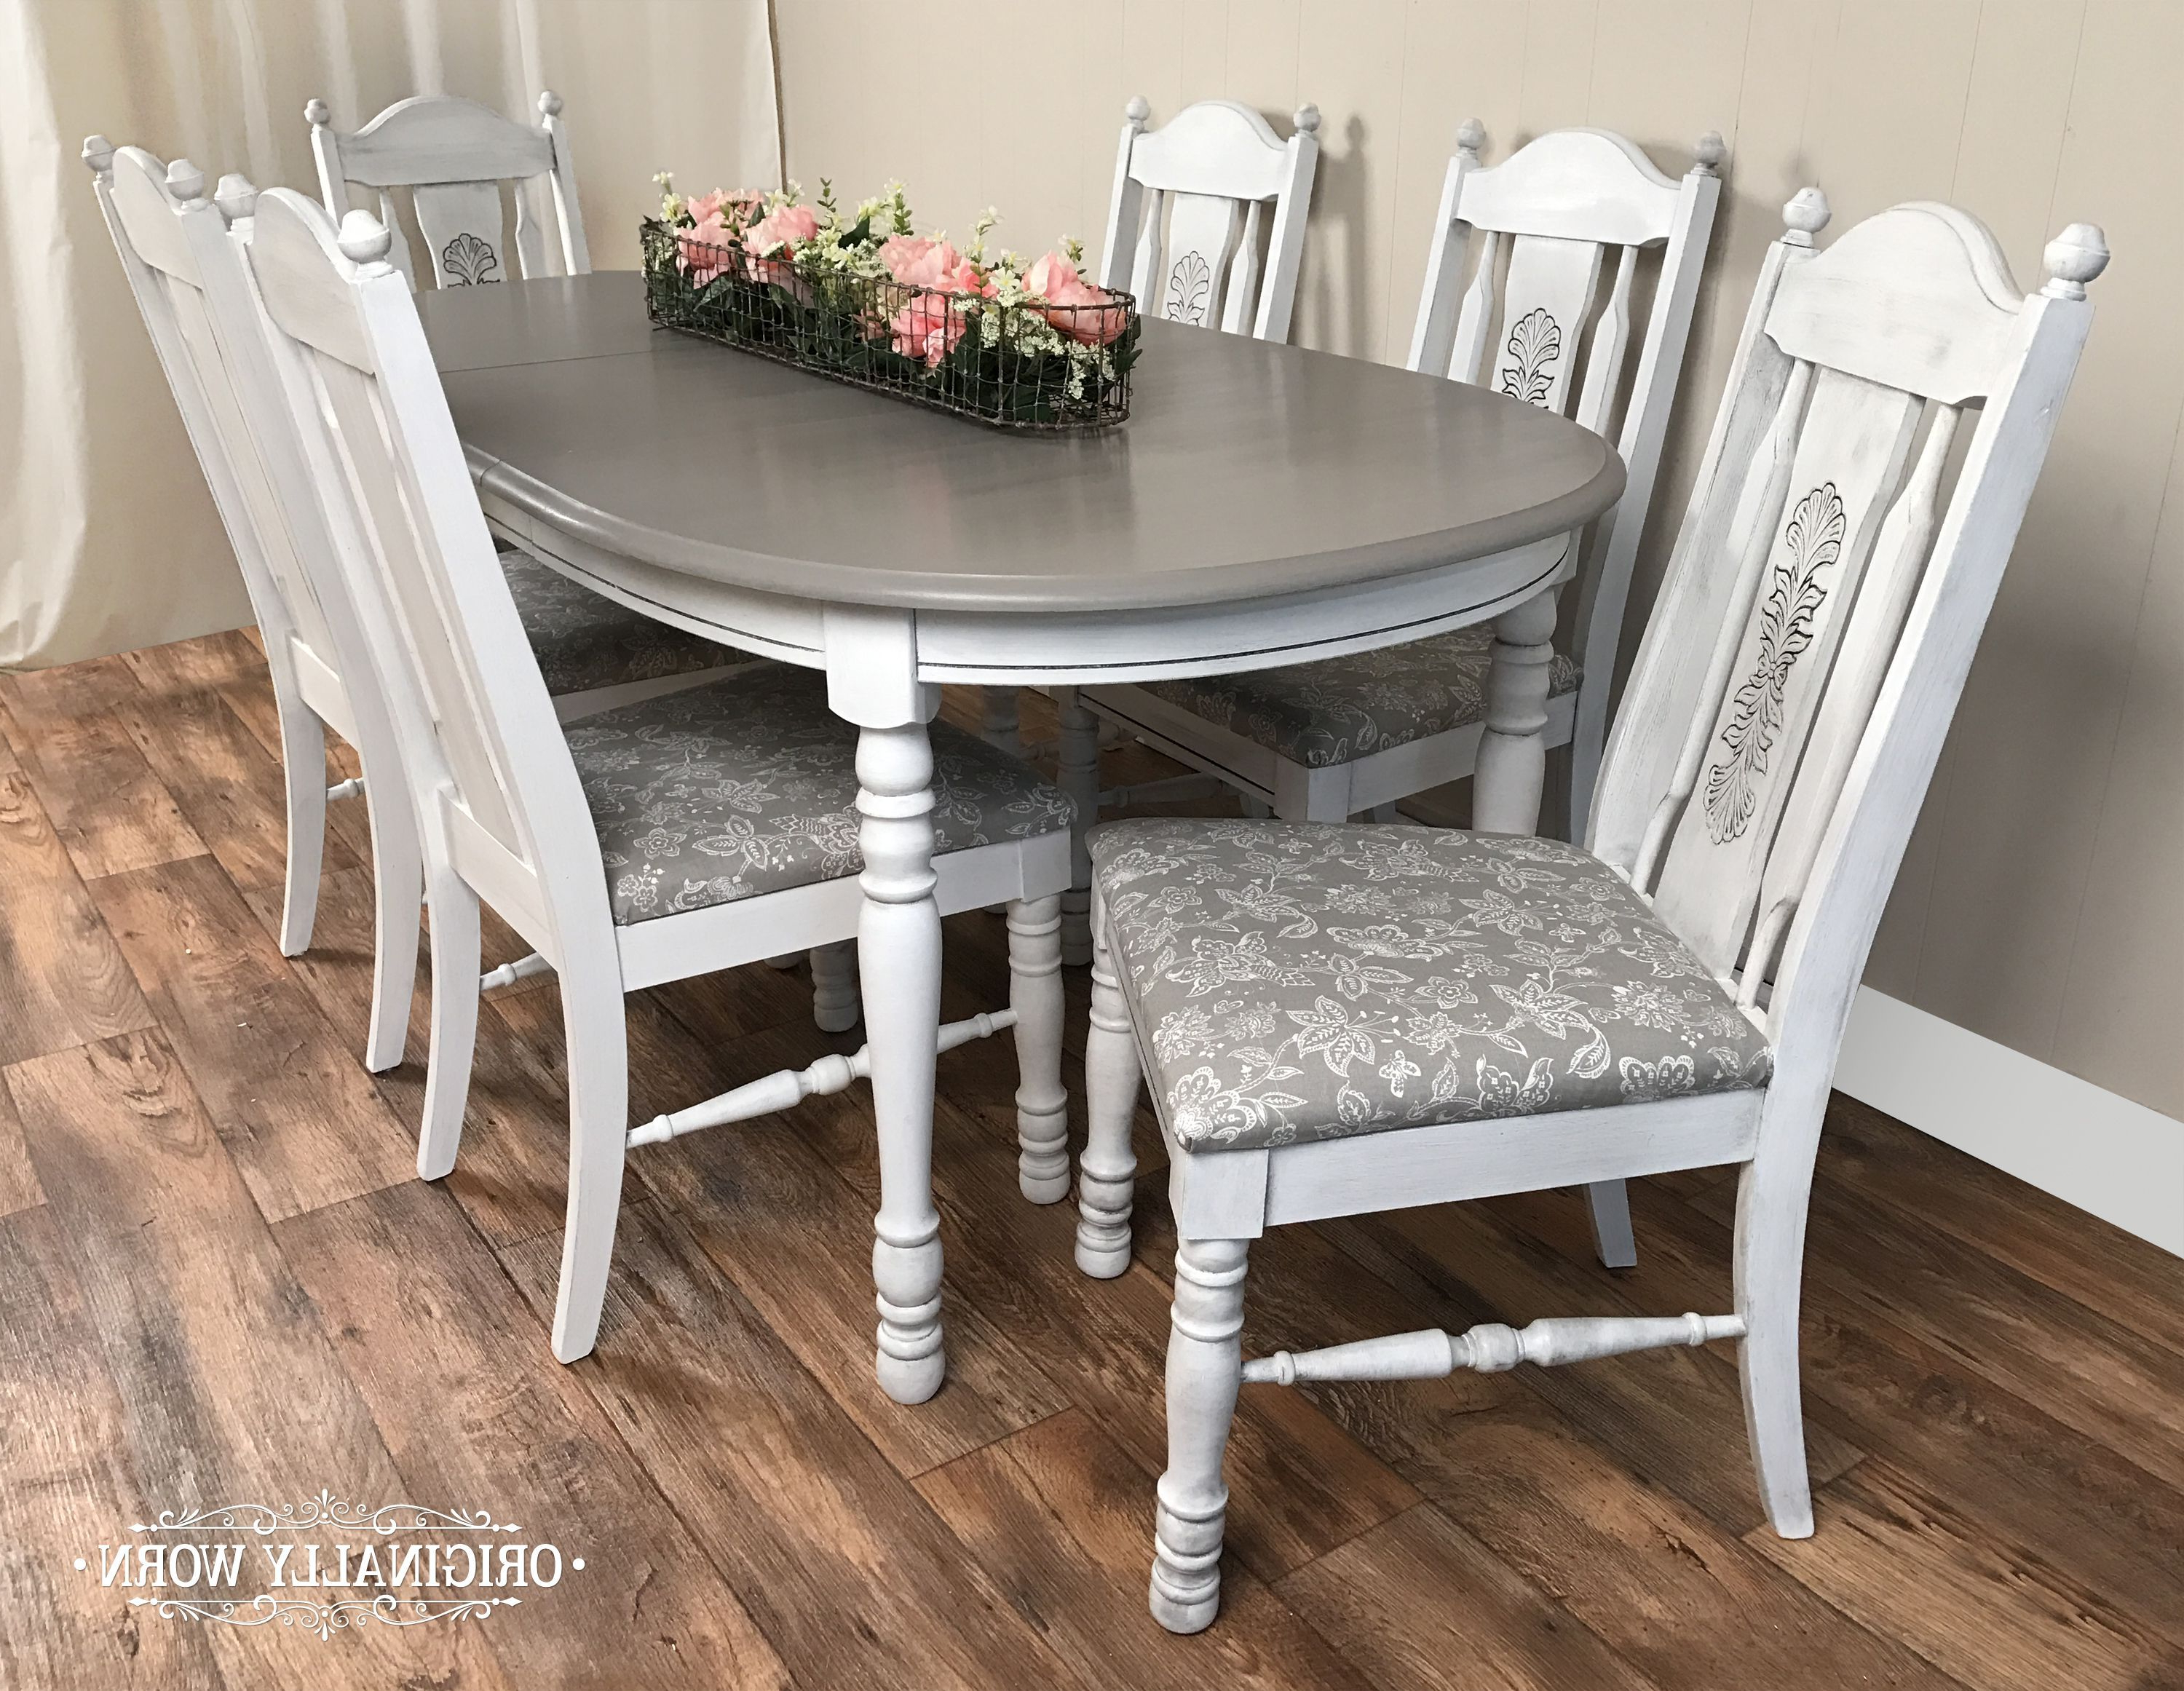 Trendy 7 Piece Oval Dining Set In Annie Sloan Chalk Paint In Pure White And Inside Castellanos Modern 5 Piece Counter Height Dining Sets (View 22 of 25)